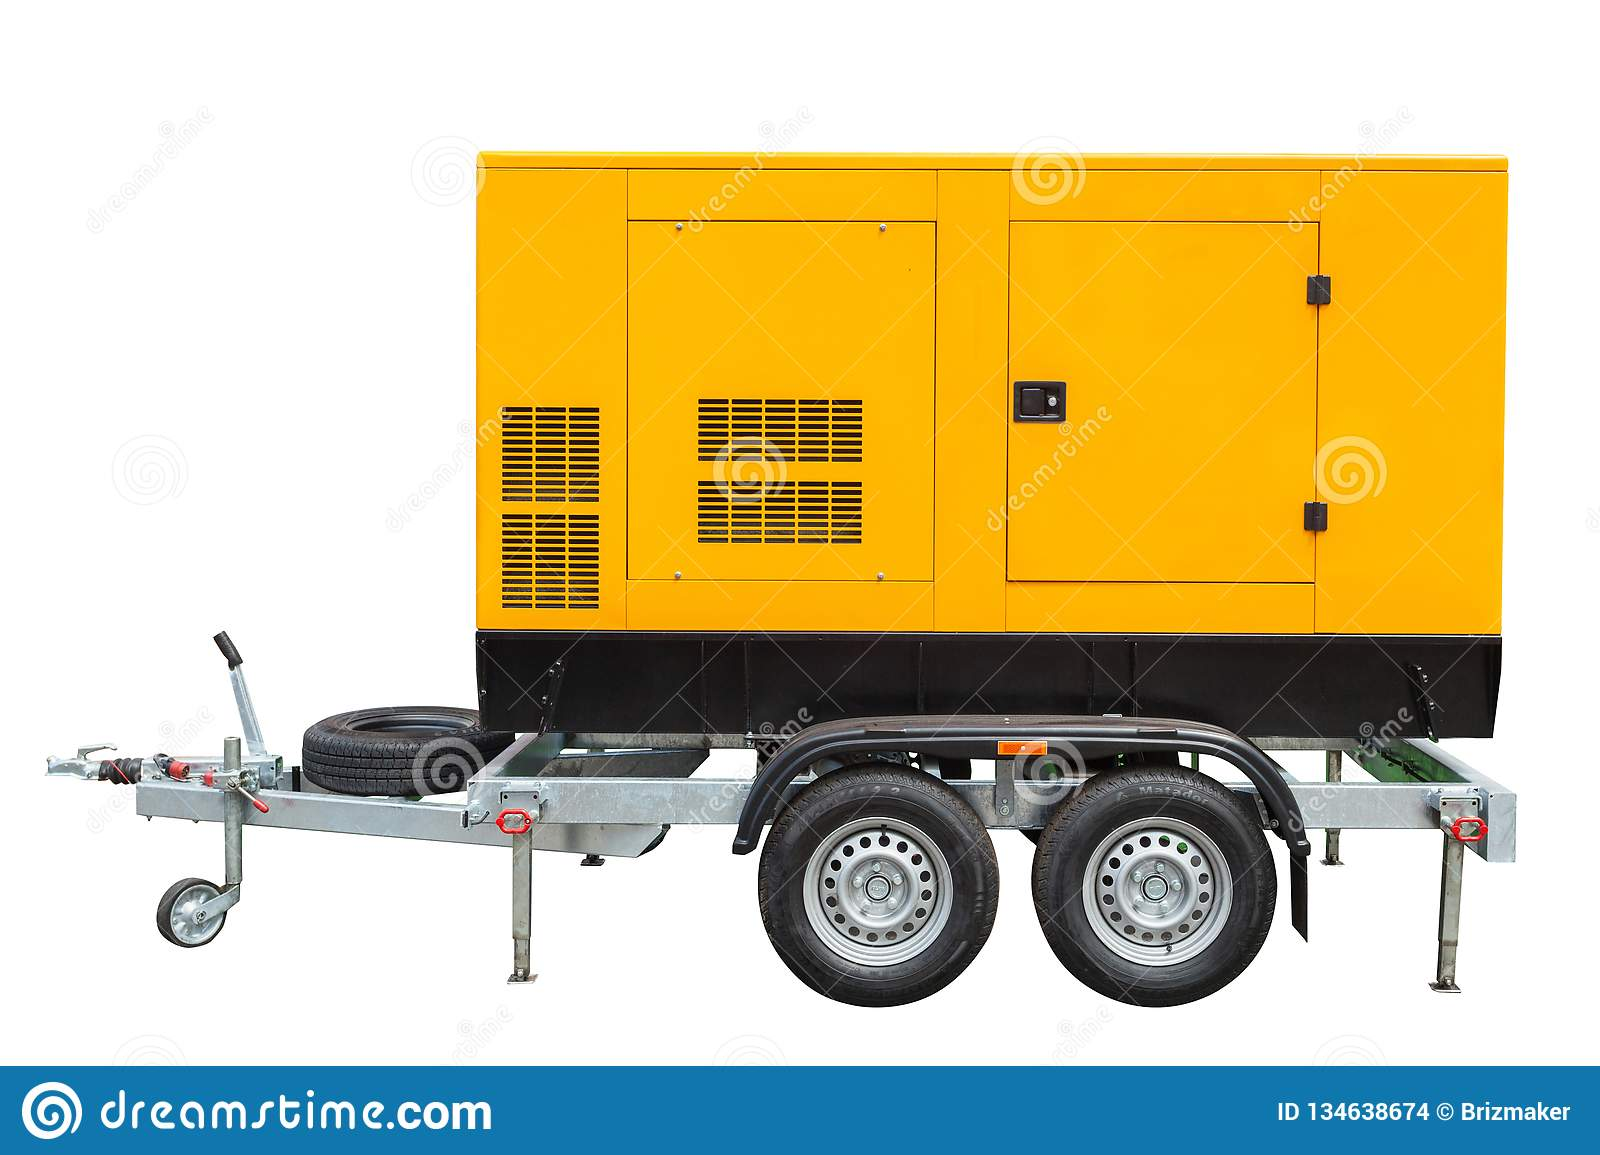 Mobile Diesel Generator For Emergency Electric Power Isolated On